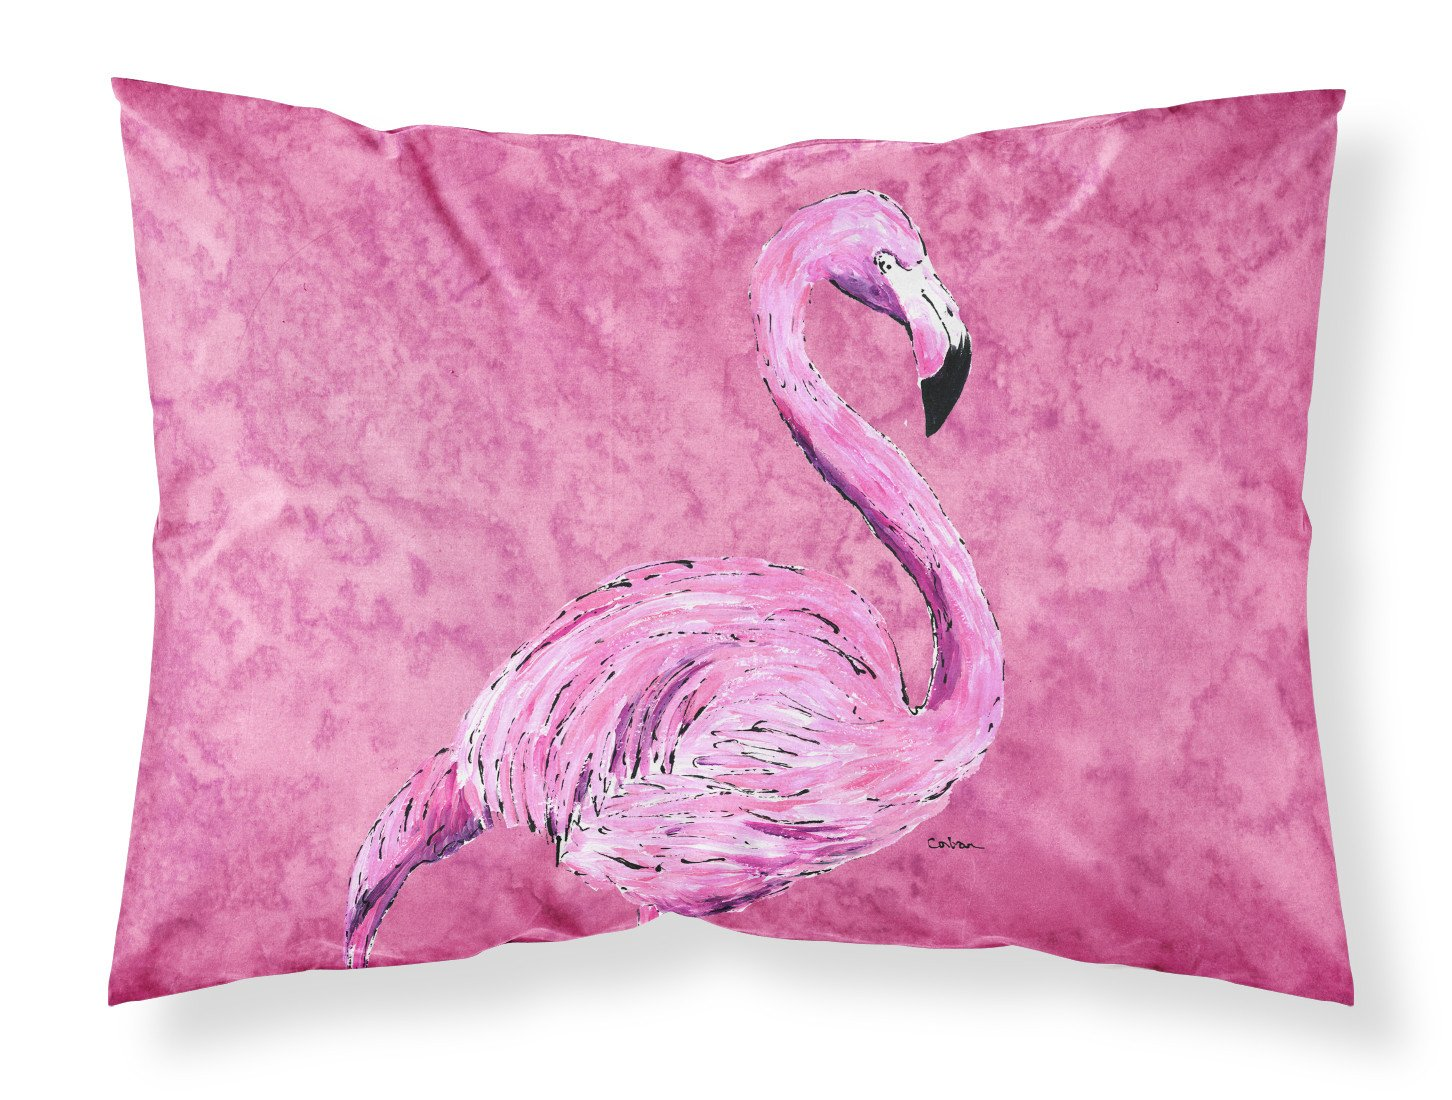 Buy this Flamingo on Pink Moisture wicking Fabric standard pillowcase